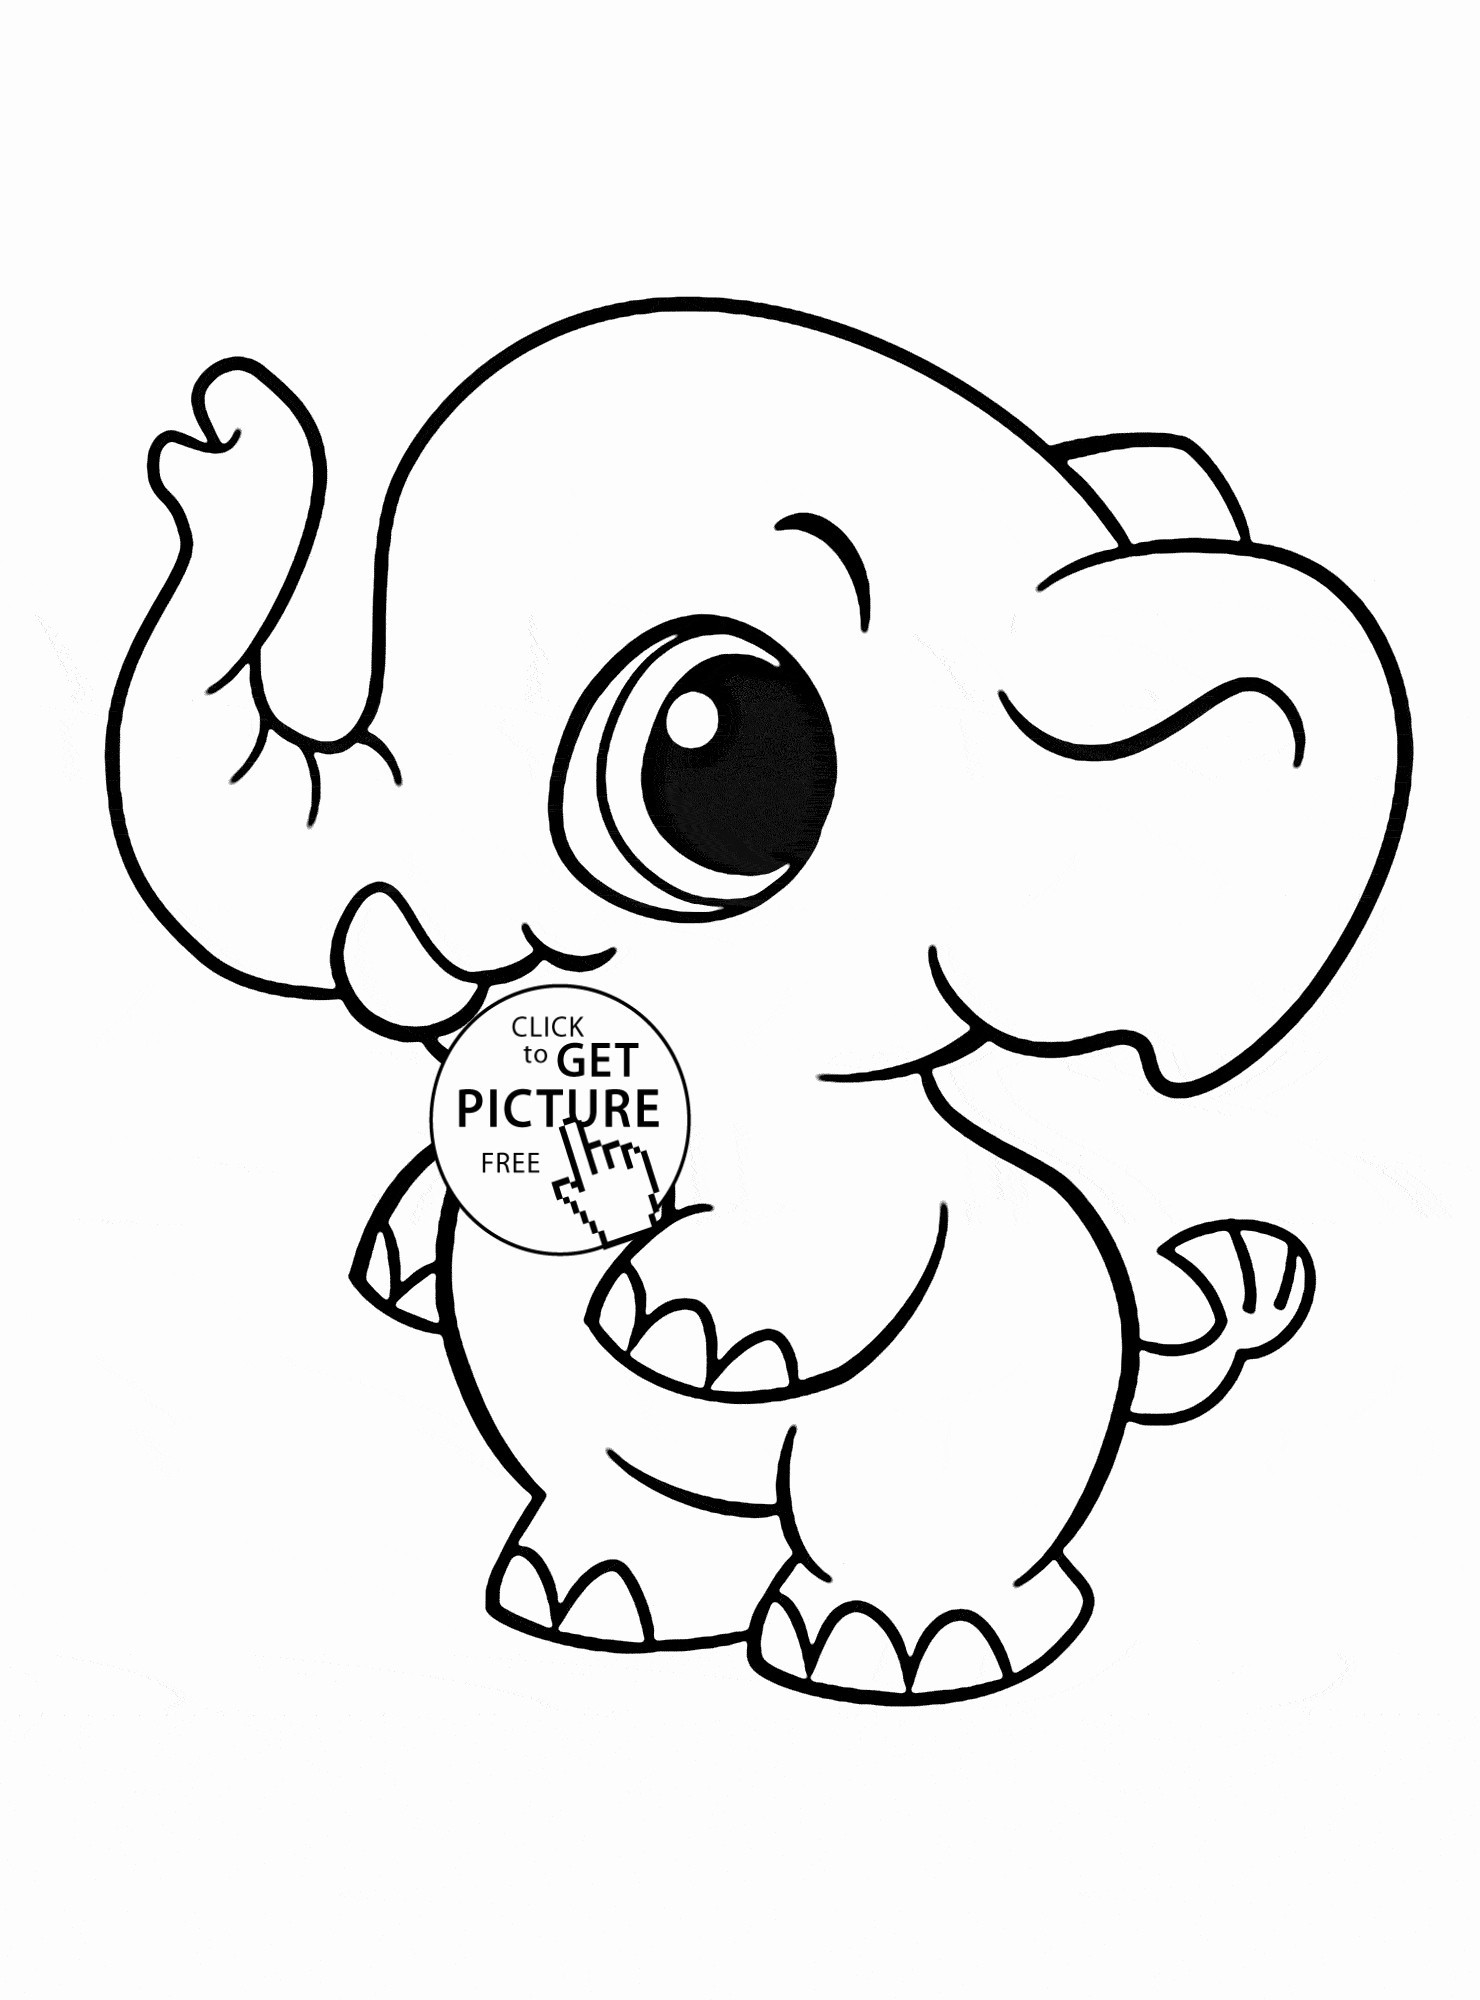 Balloon Coloring Pages Printable  Gallery 20t - Free Download